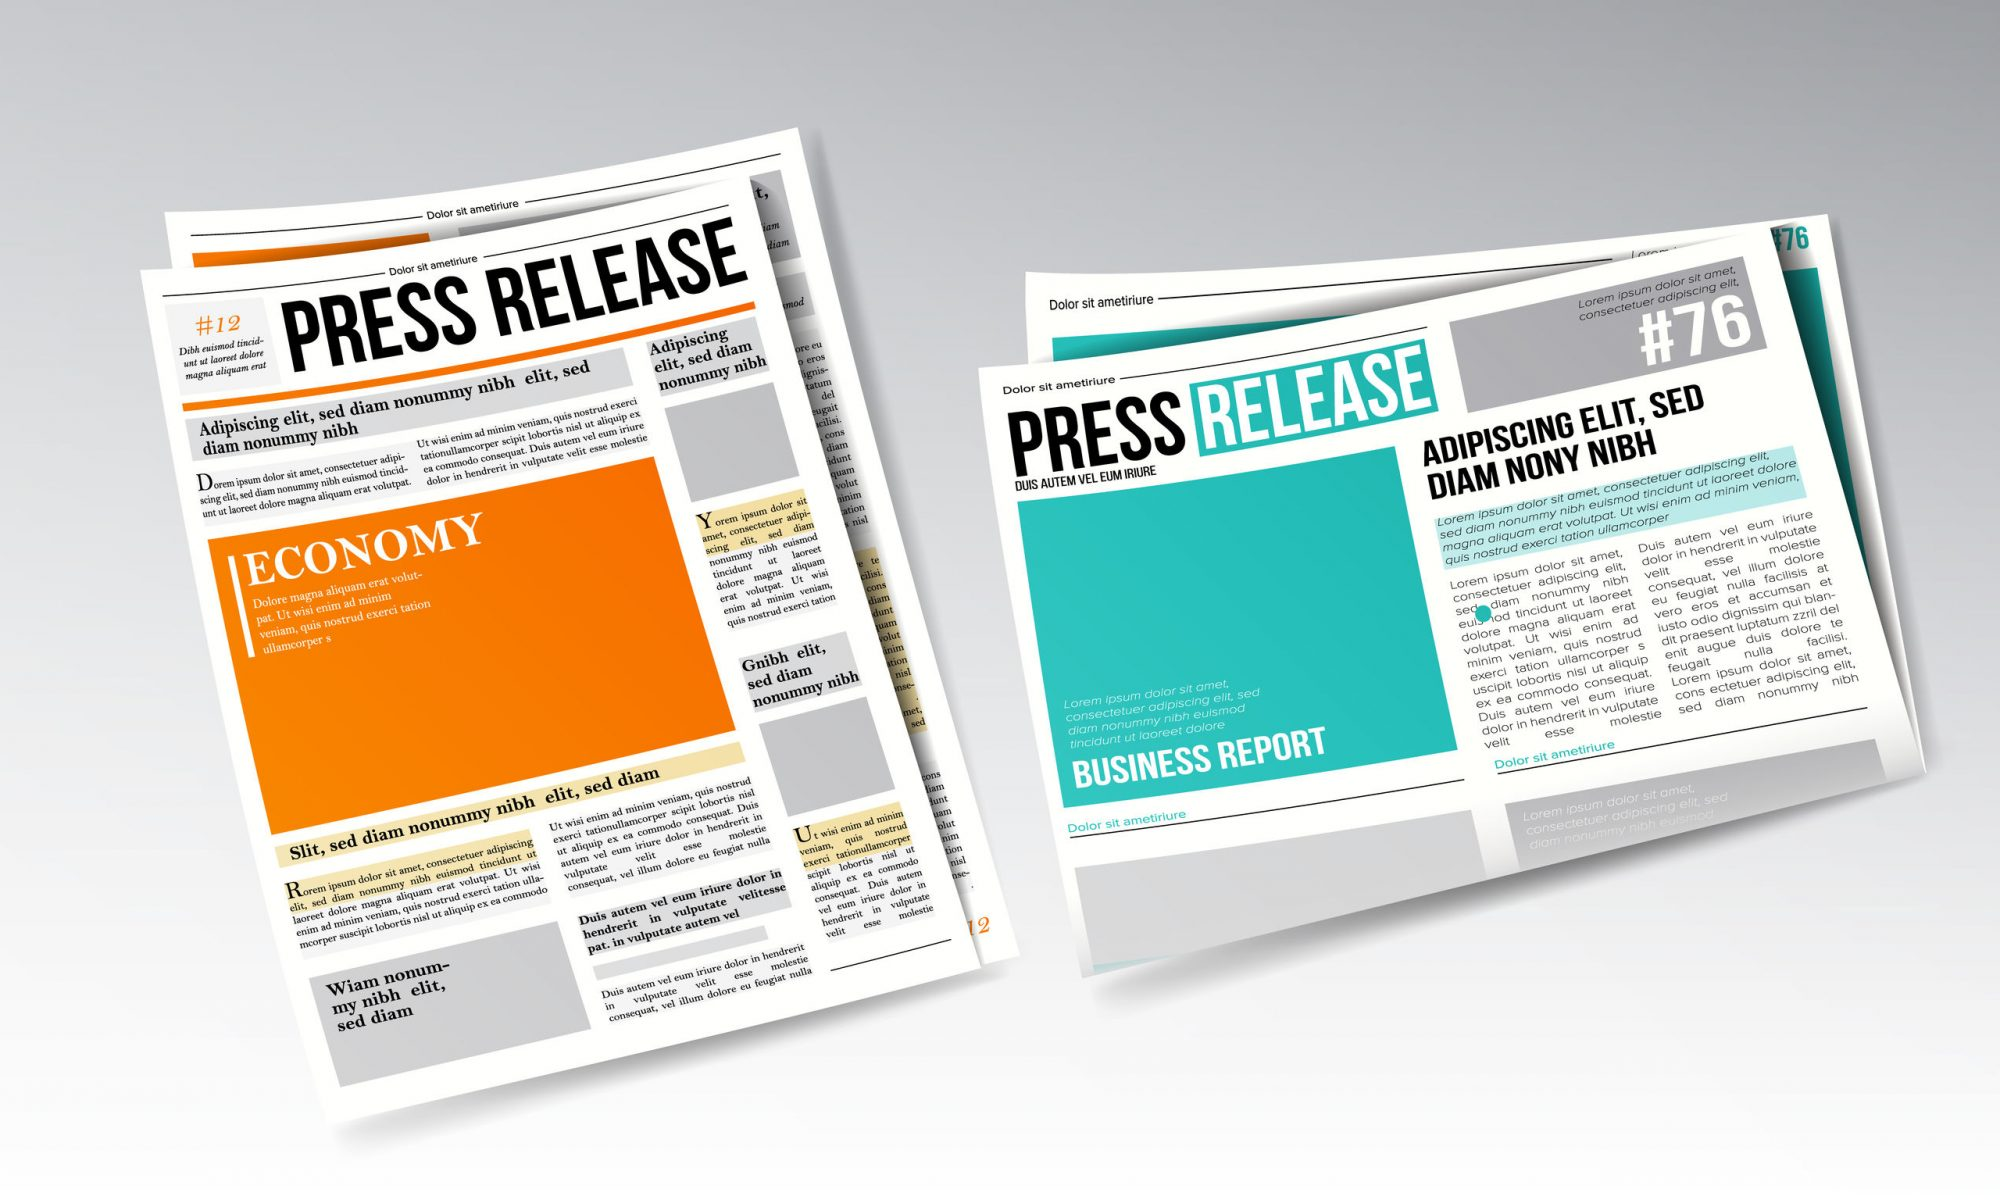 Create Powerful Business Press Releases